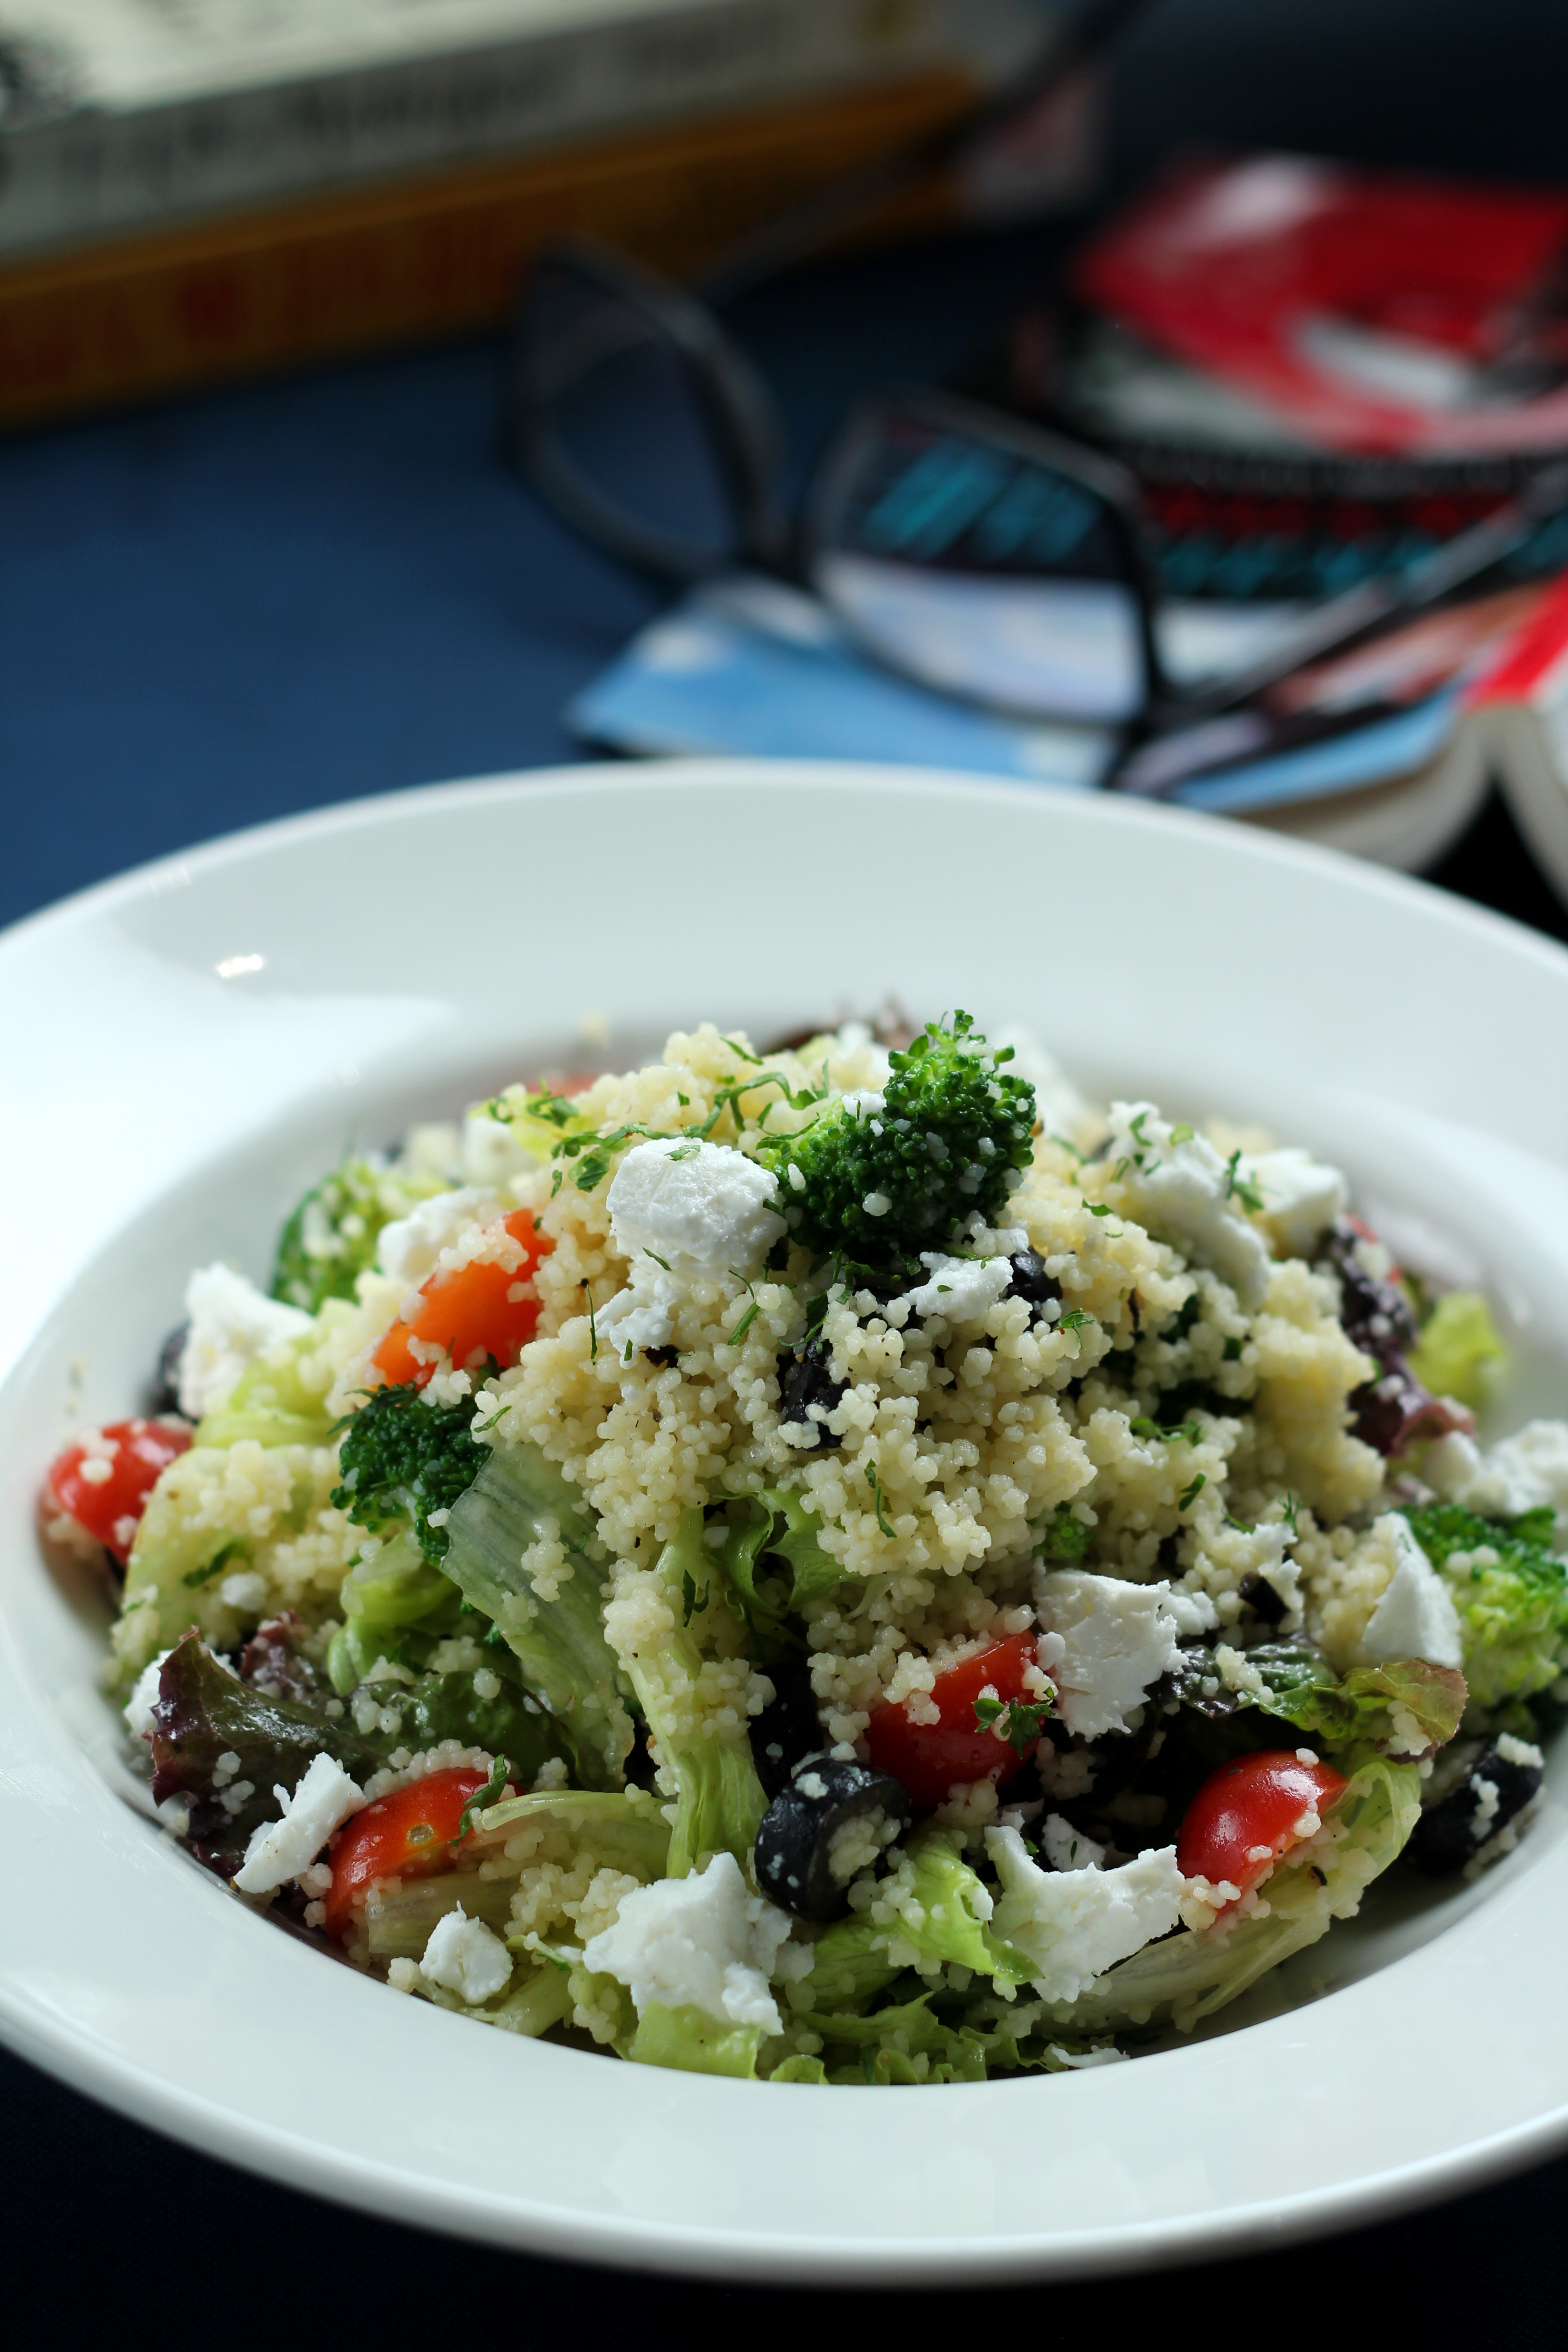 MINTED COUSCOUS SALAD